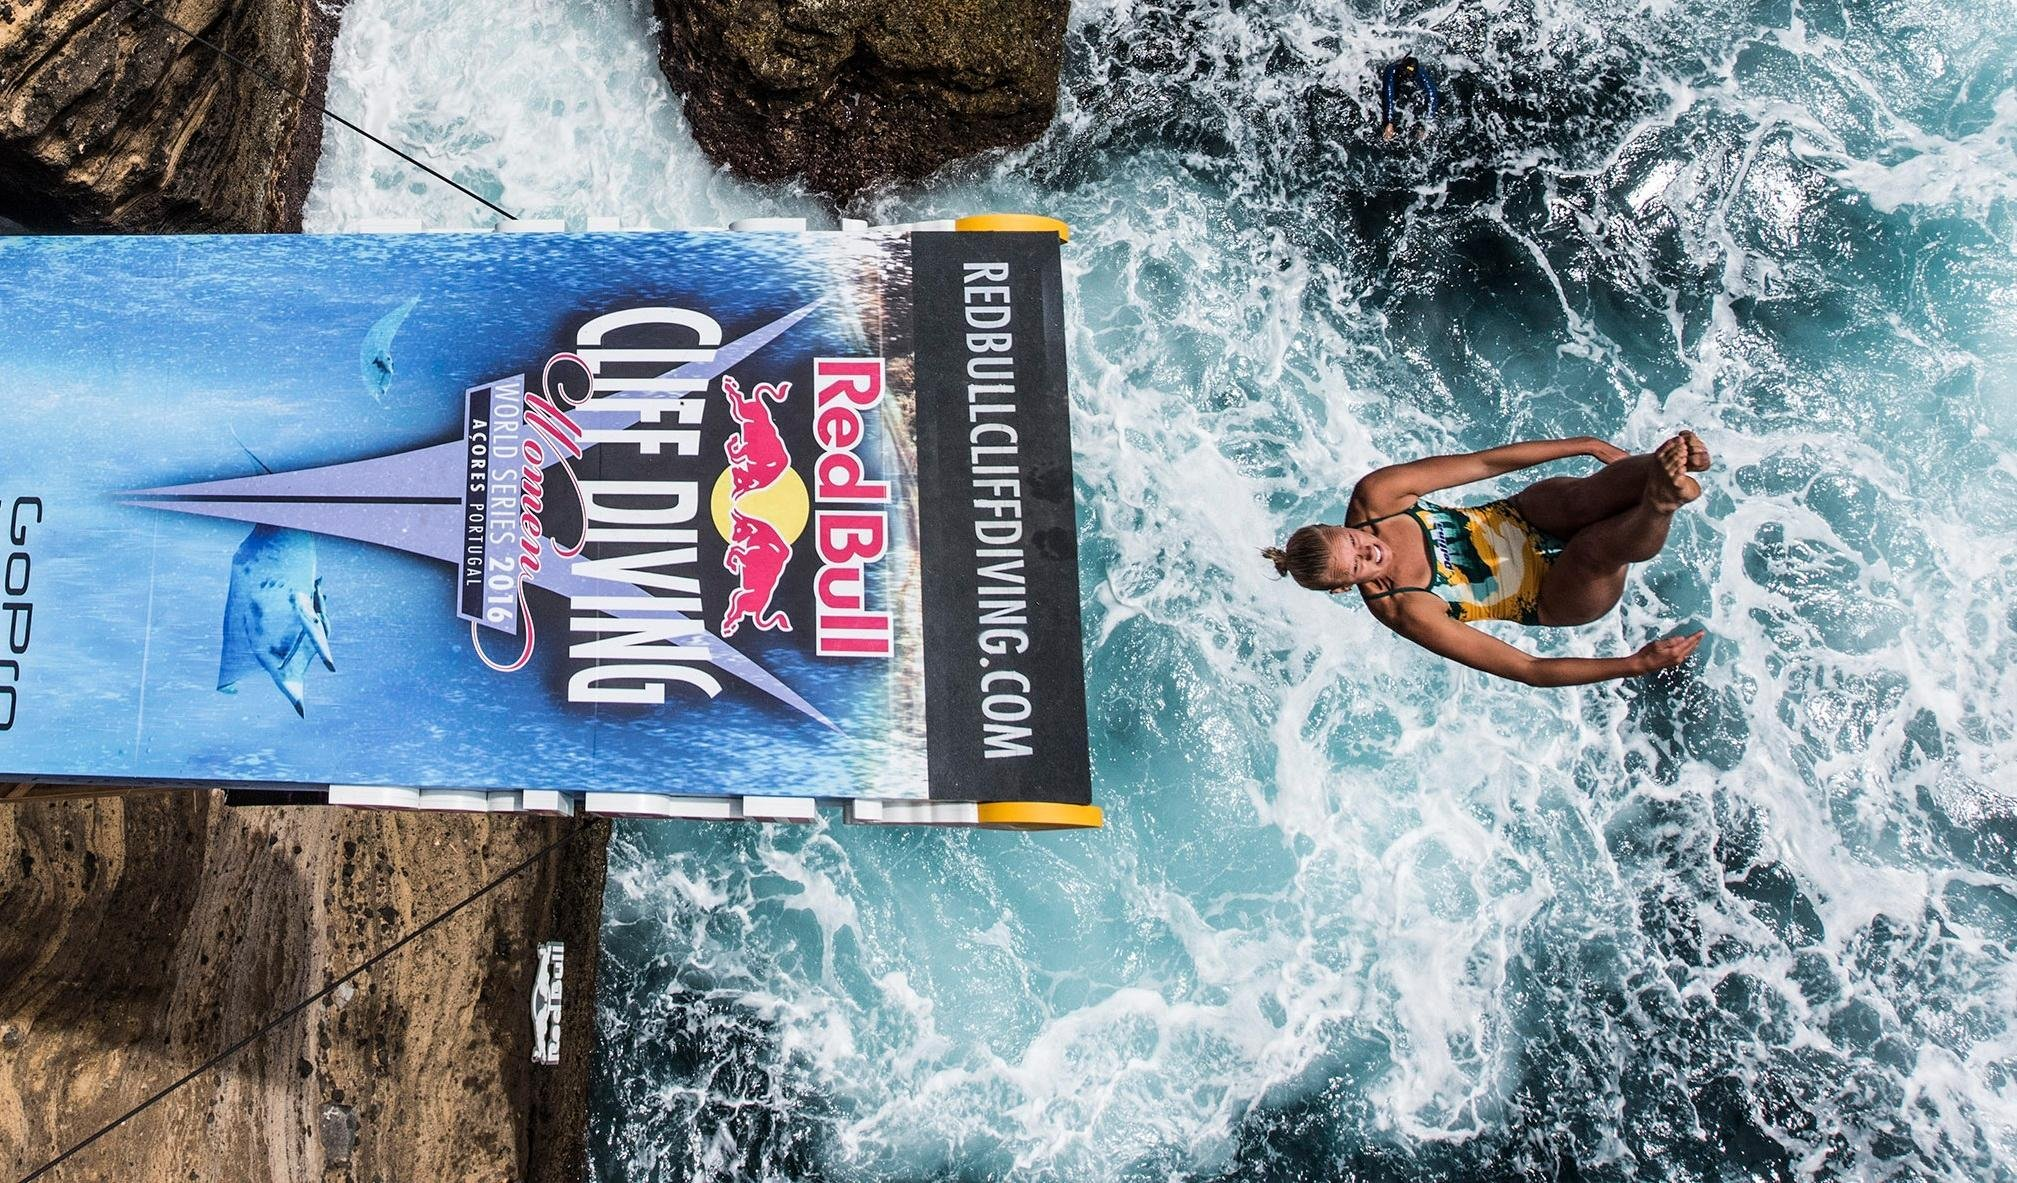 """Wildcard competitor Rhiannan Iffland claims cliff diving top spots"""